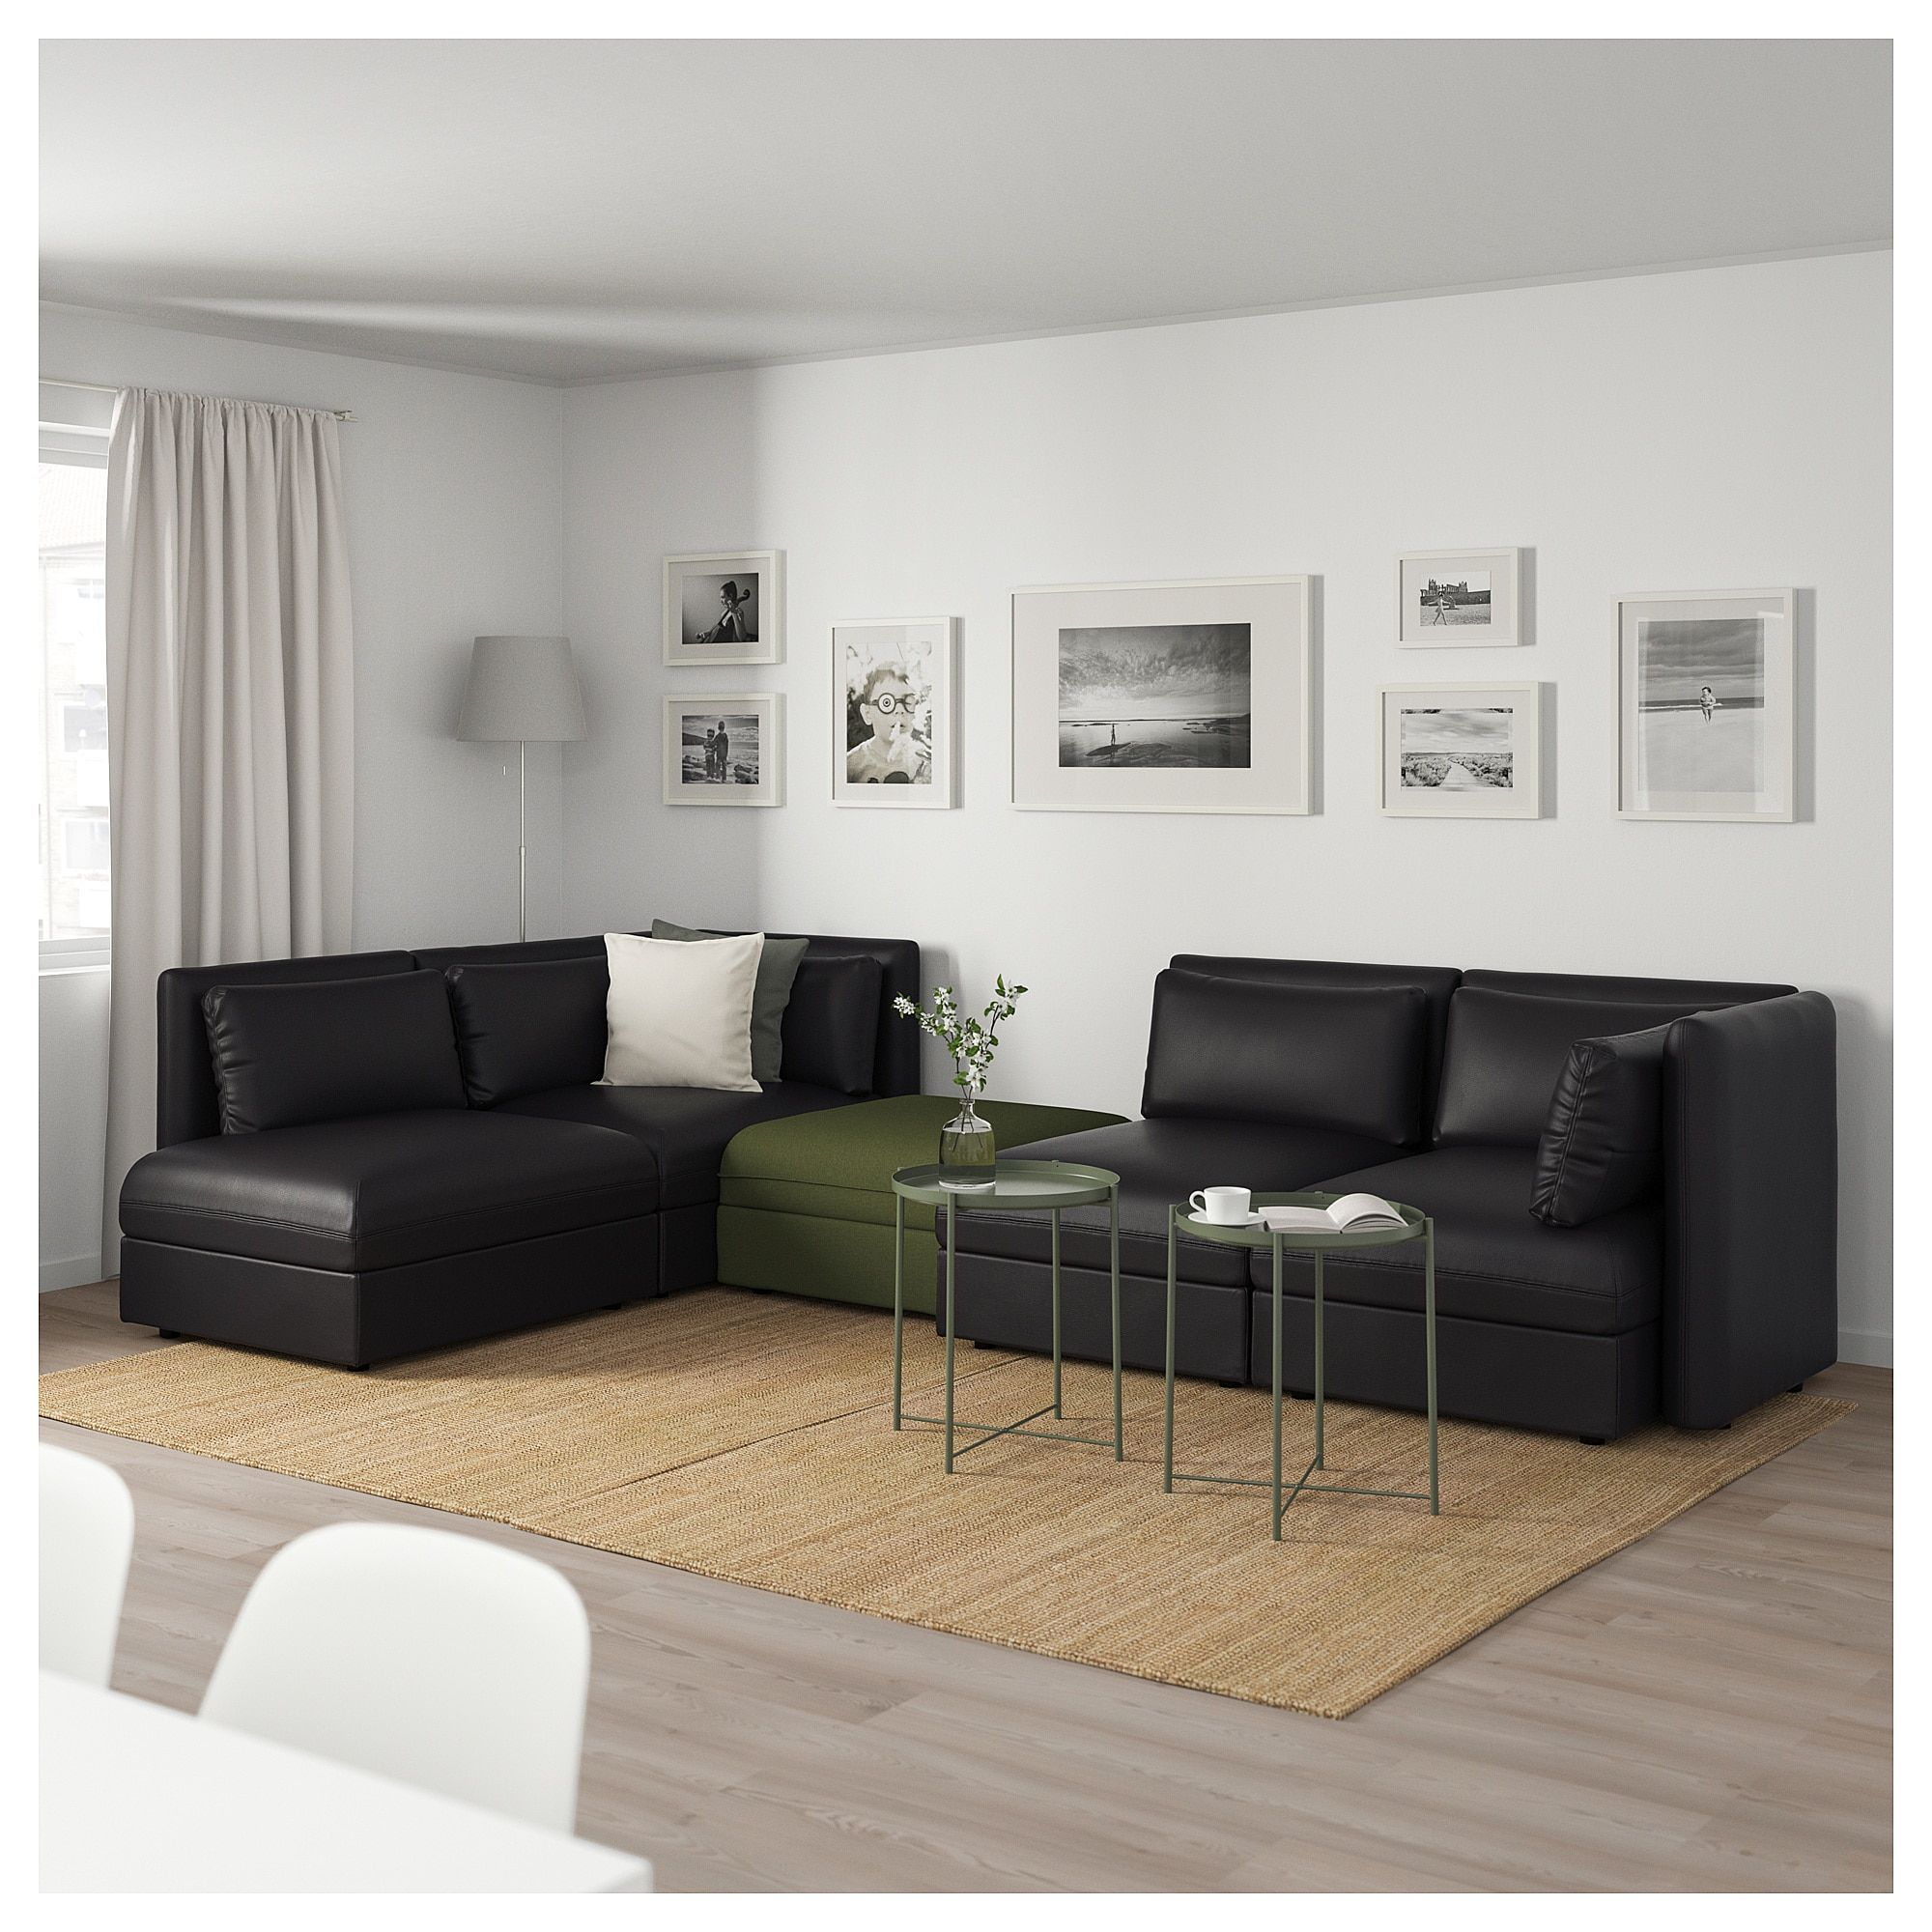 Vallentuna 4 Seat Modular Sofa With 3 Beds Ikea Vallentuna Modular Corner Sofa 4 Seat With Storage In